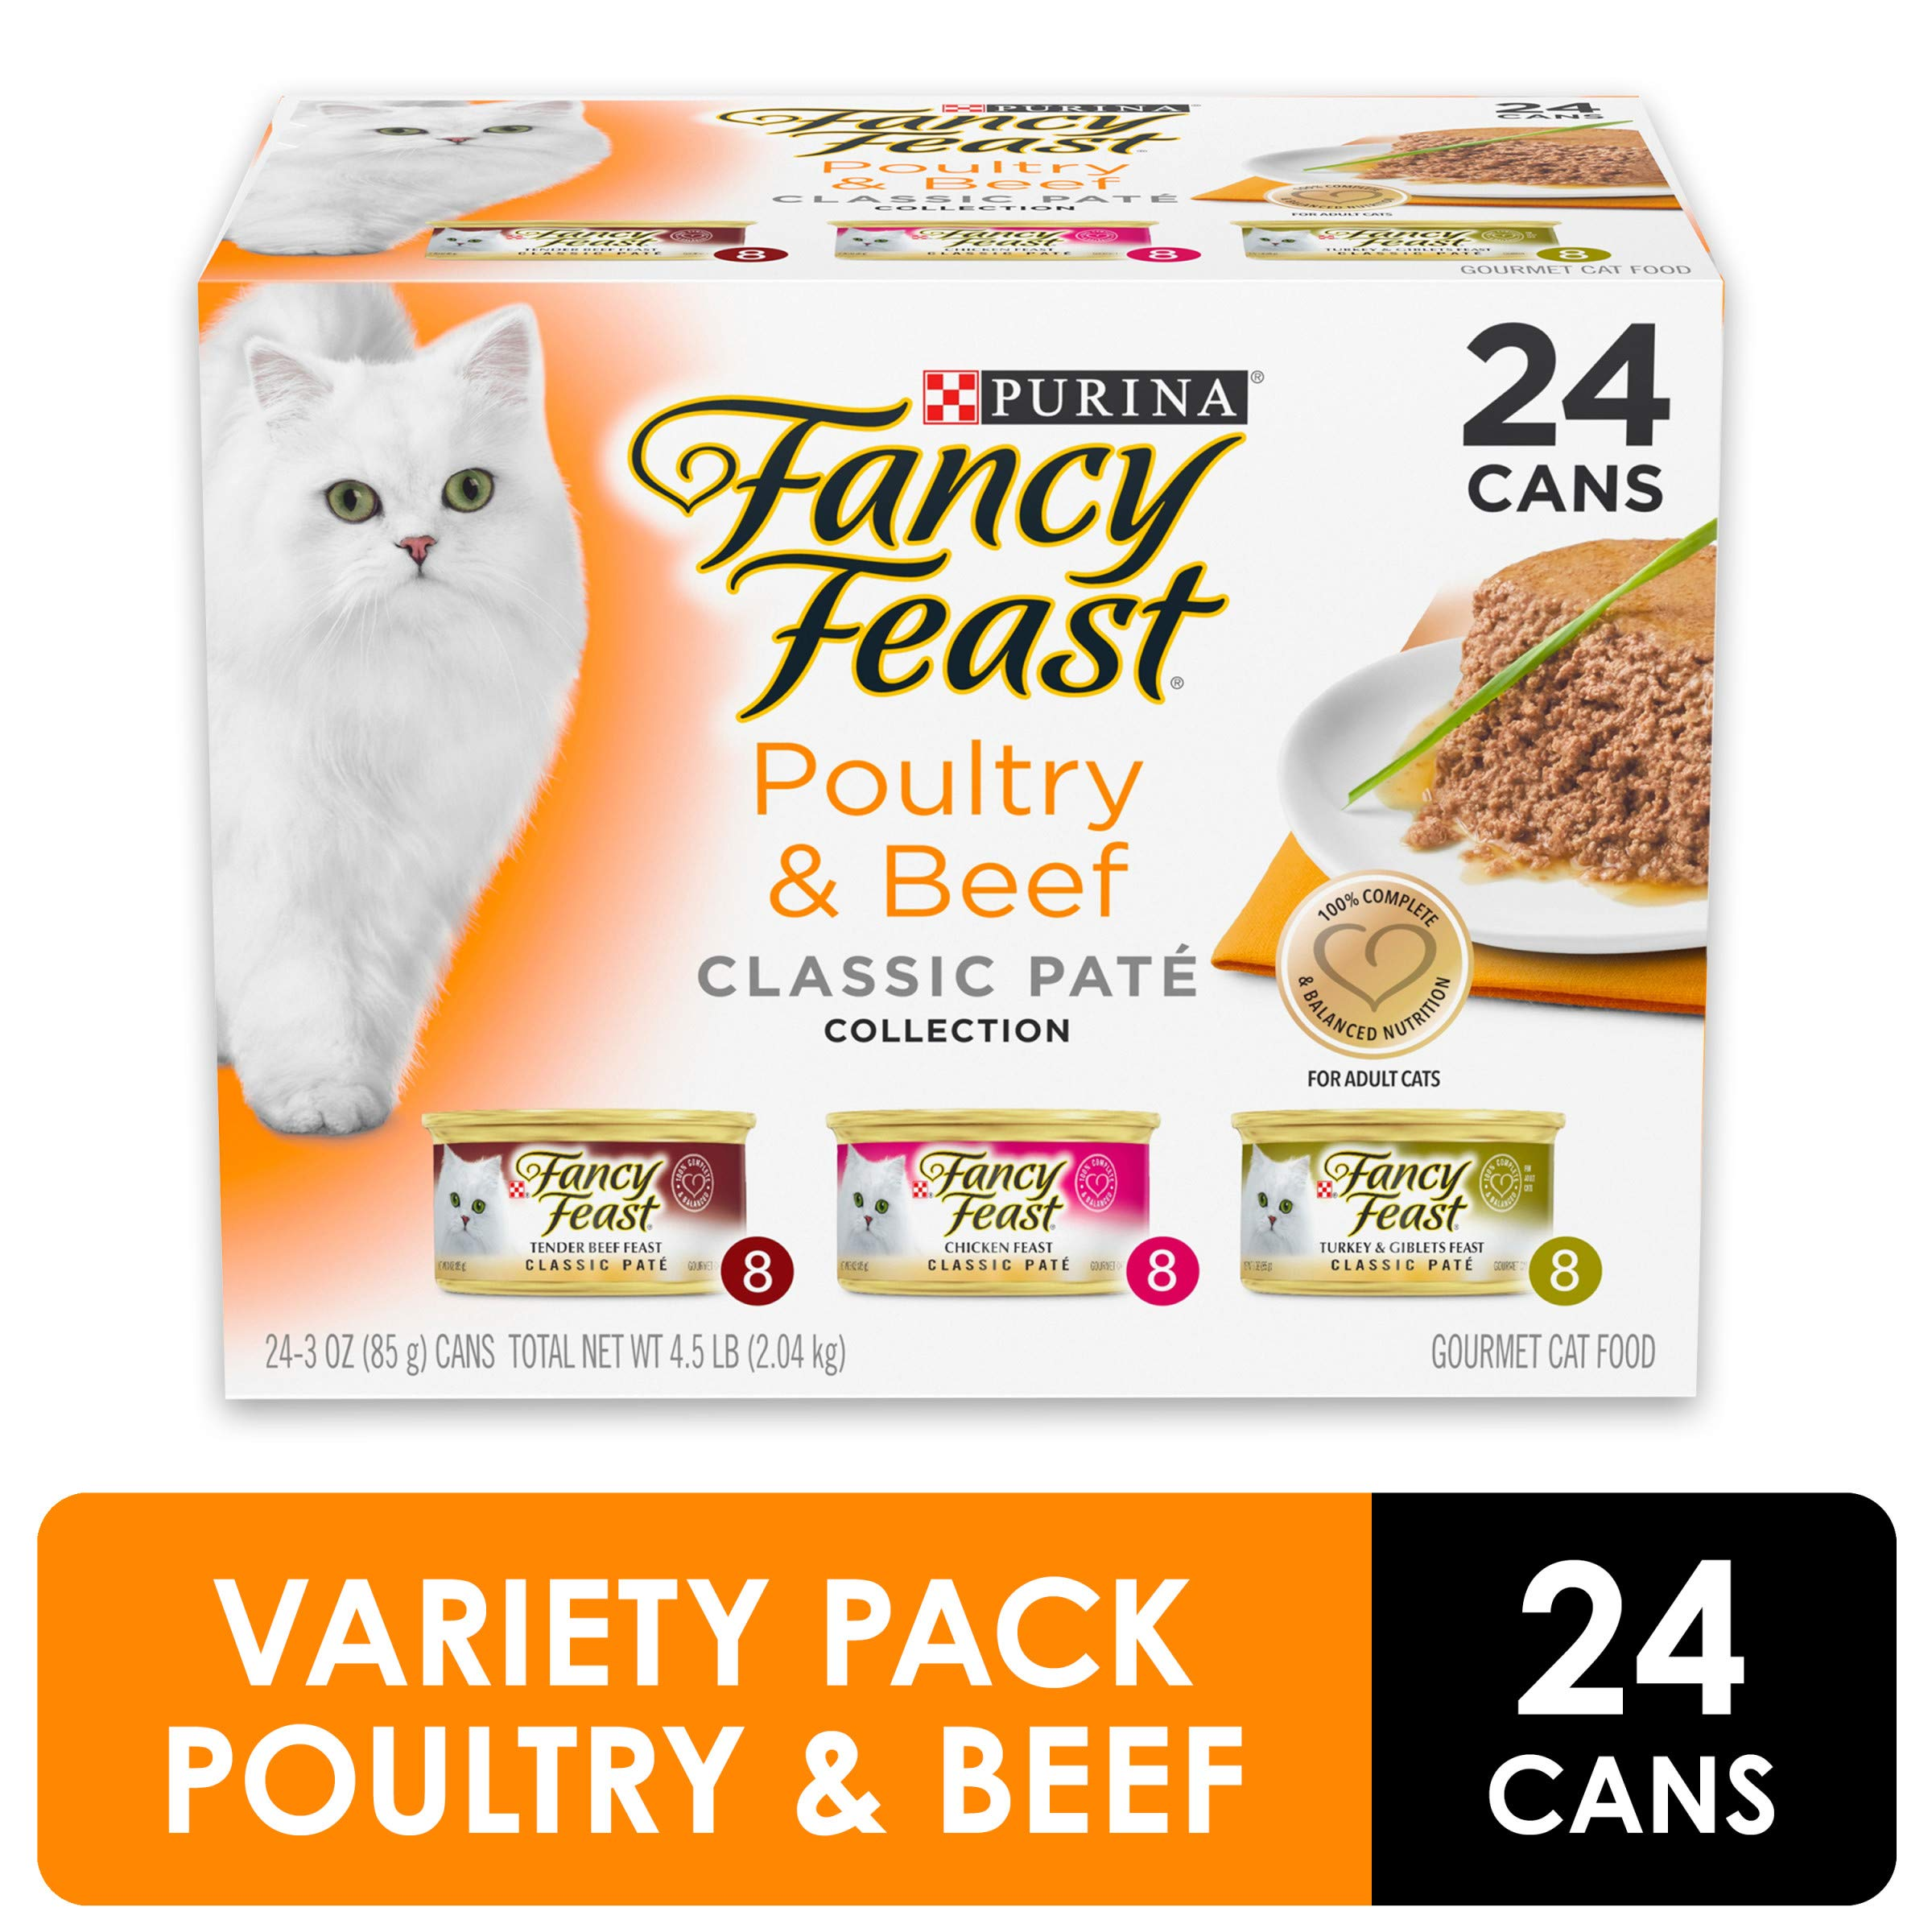 Purina Fancy Feast Grain Free Pate Wet Cat Food Variety Pack, Poultry & Beef Collection - (24) 3 oz. Cans by Purina Fancy Feast